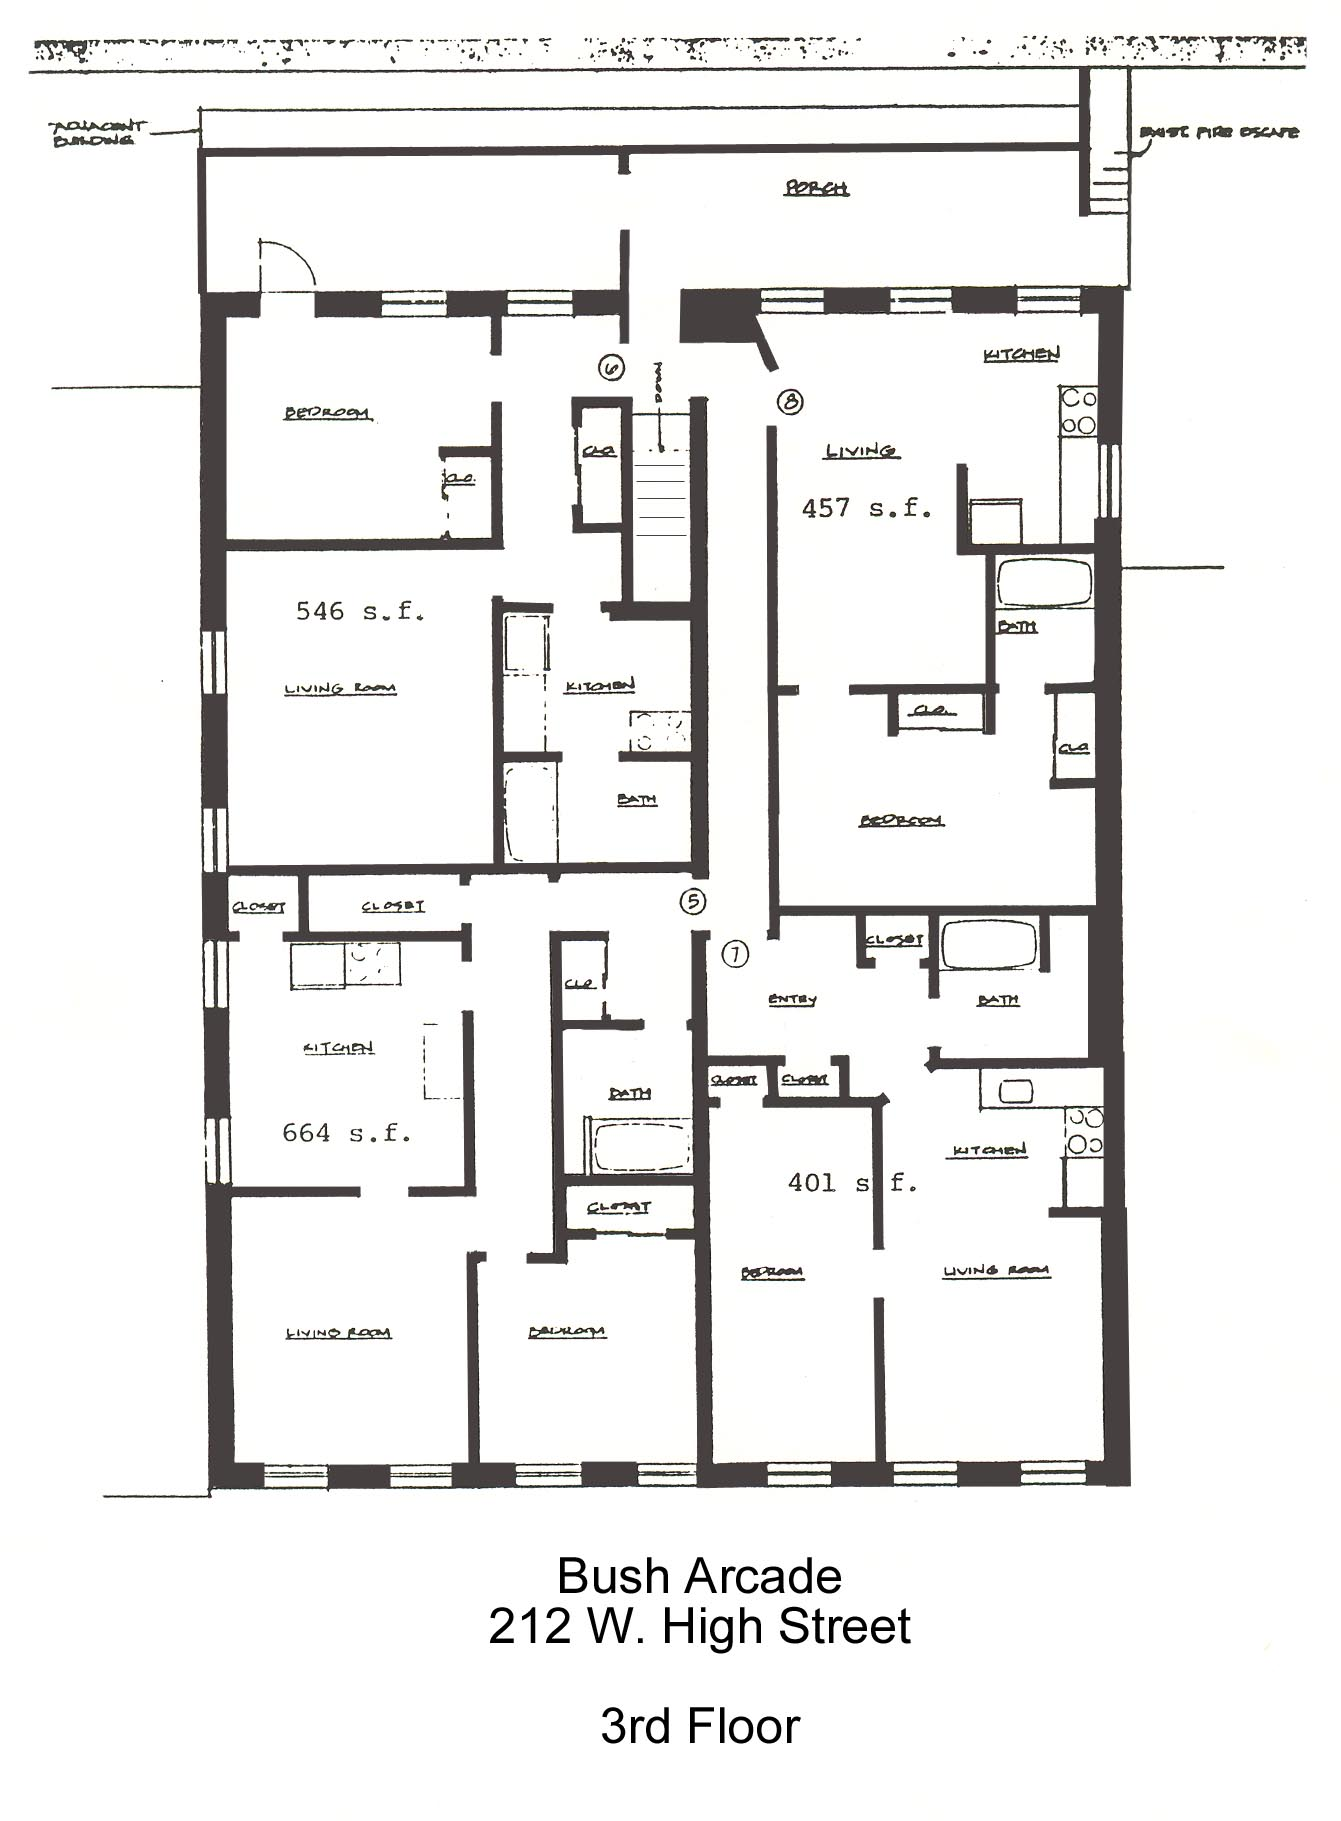 Floor Plans for apartment #5-8 at the Bush Arcade Building in Bellefonte PA